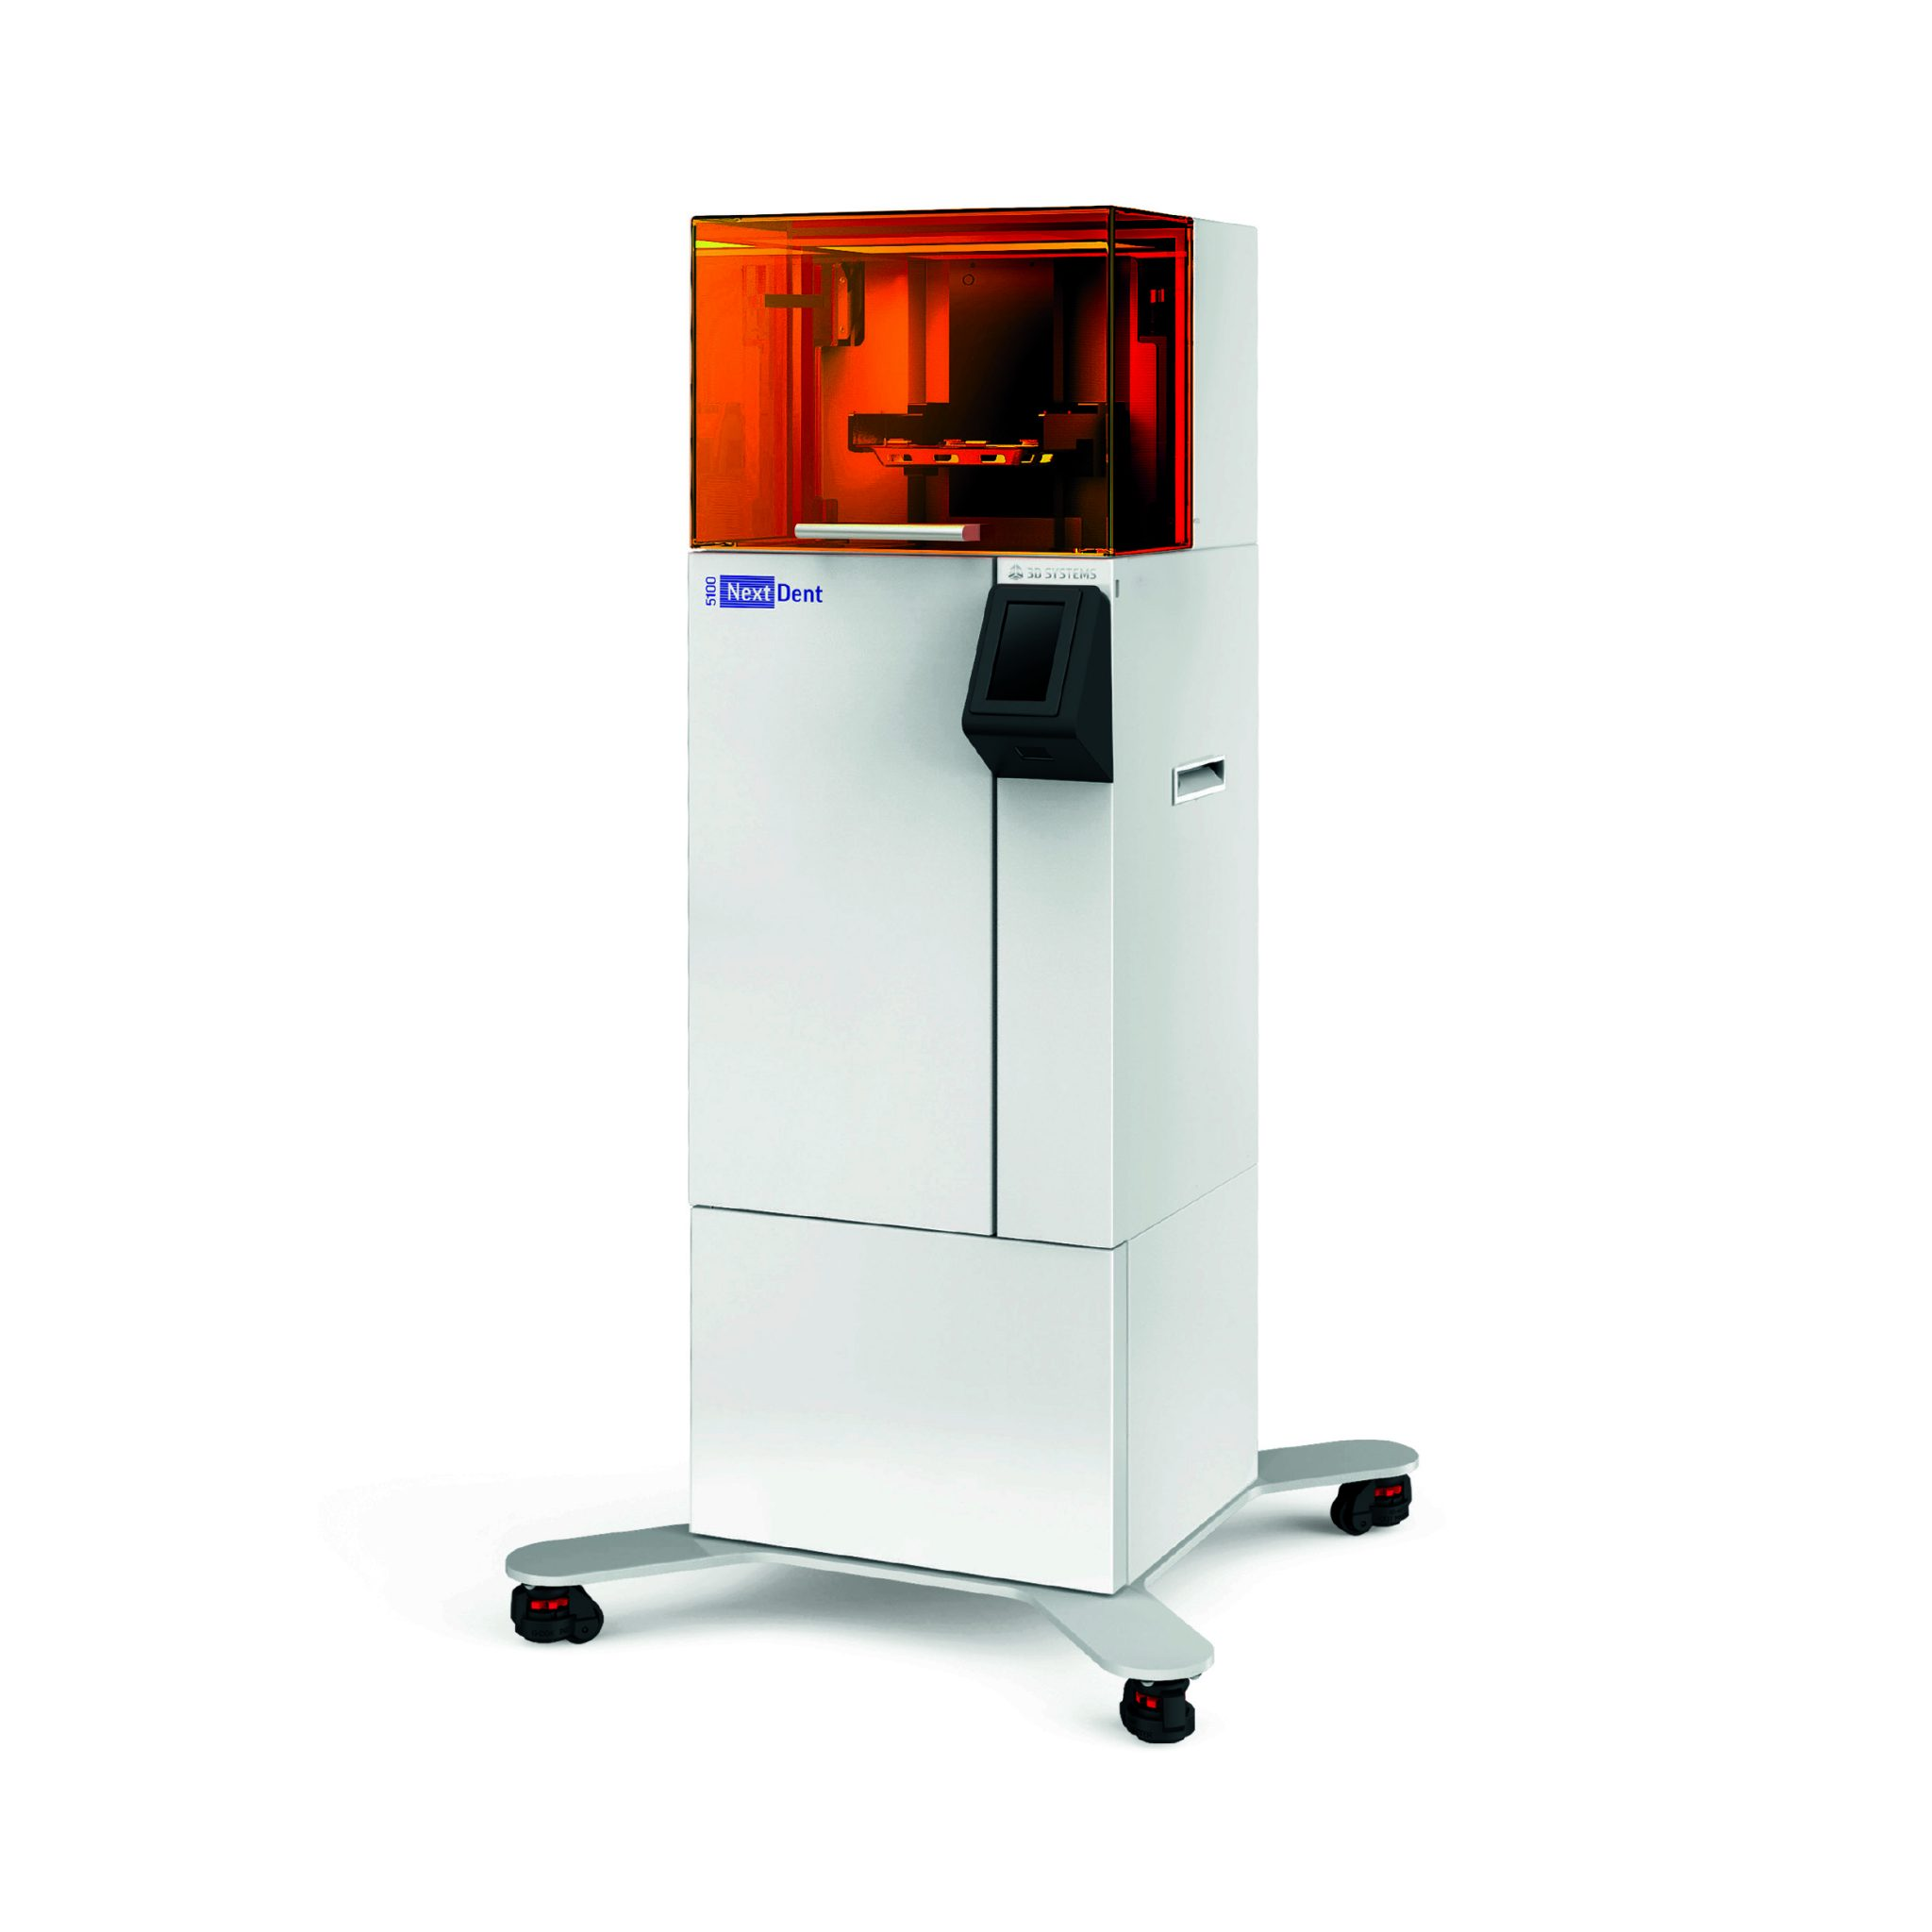 The 3D Systems NextDent 5100 dental 3D printer. Photo via 3D Systems.